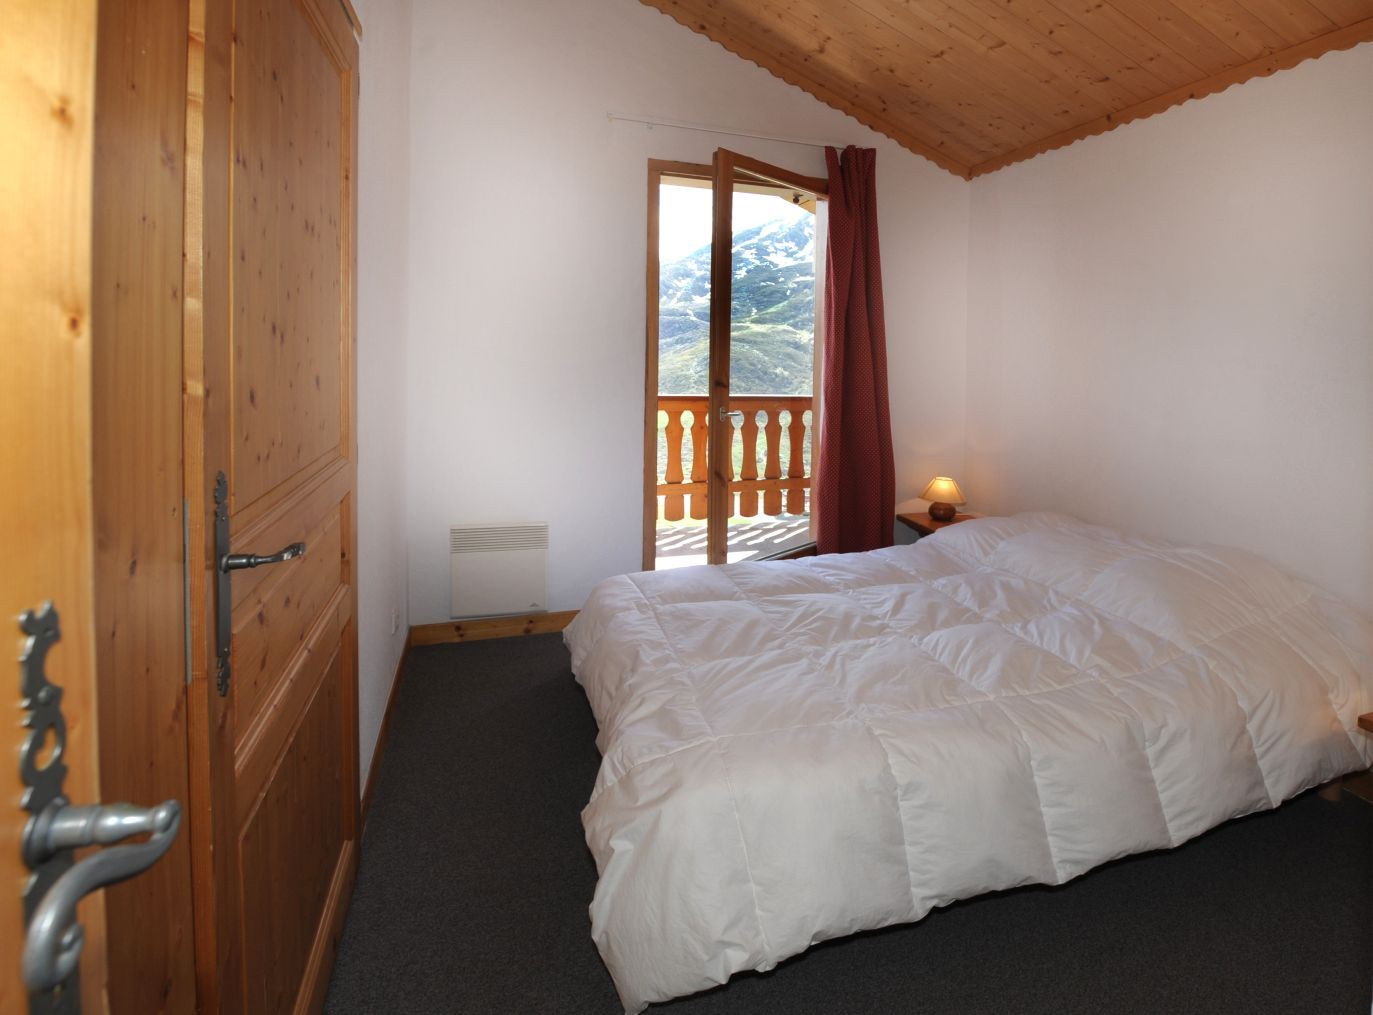 4 Rooms cabin 10/12 Pers ski-in ski-out / BOSSON 402